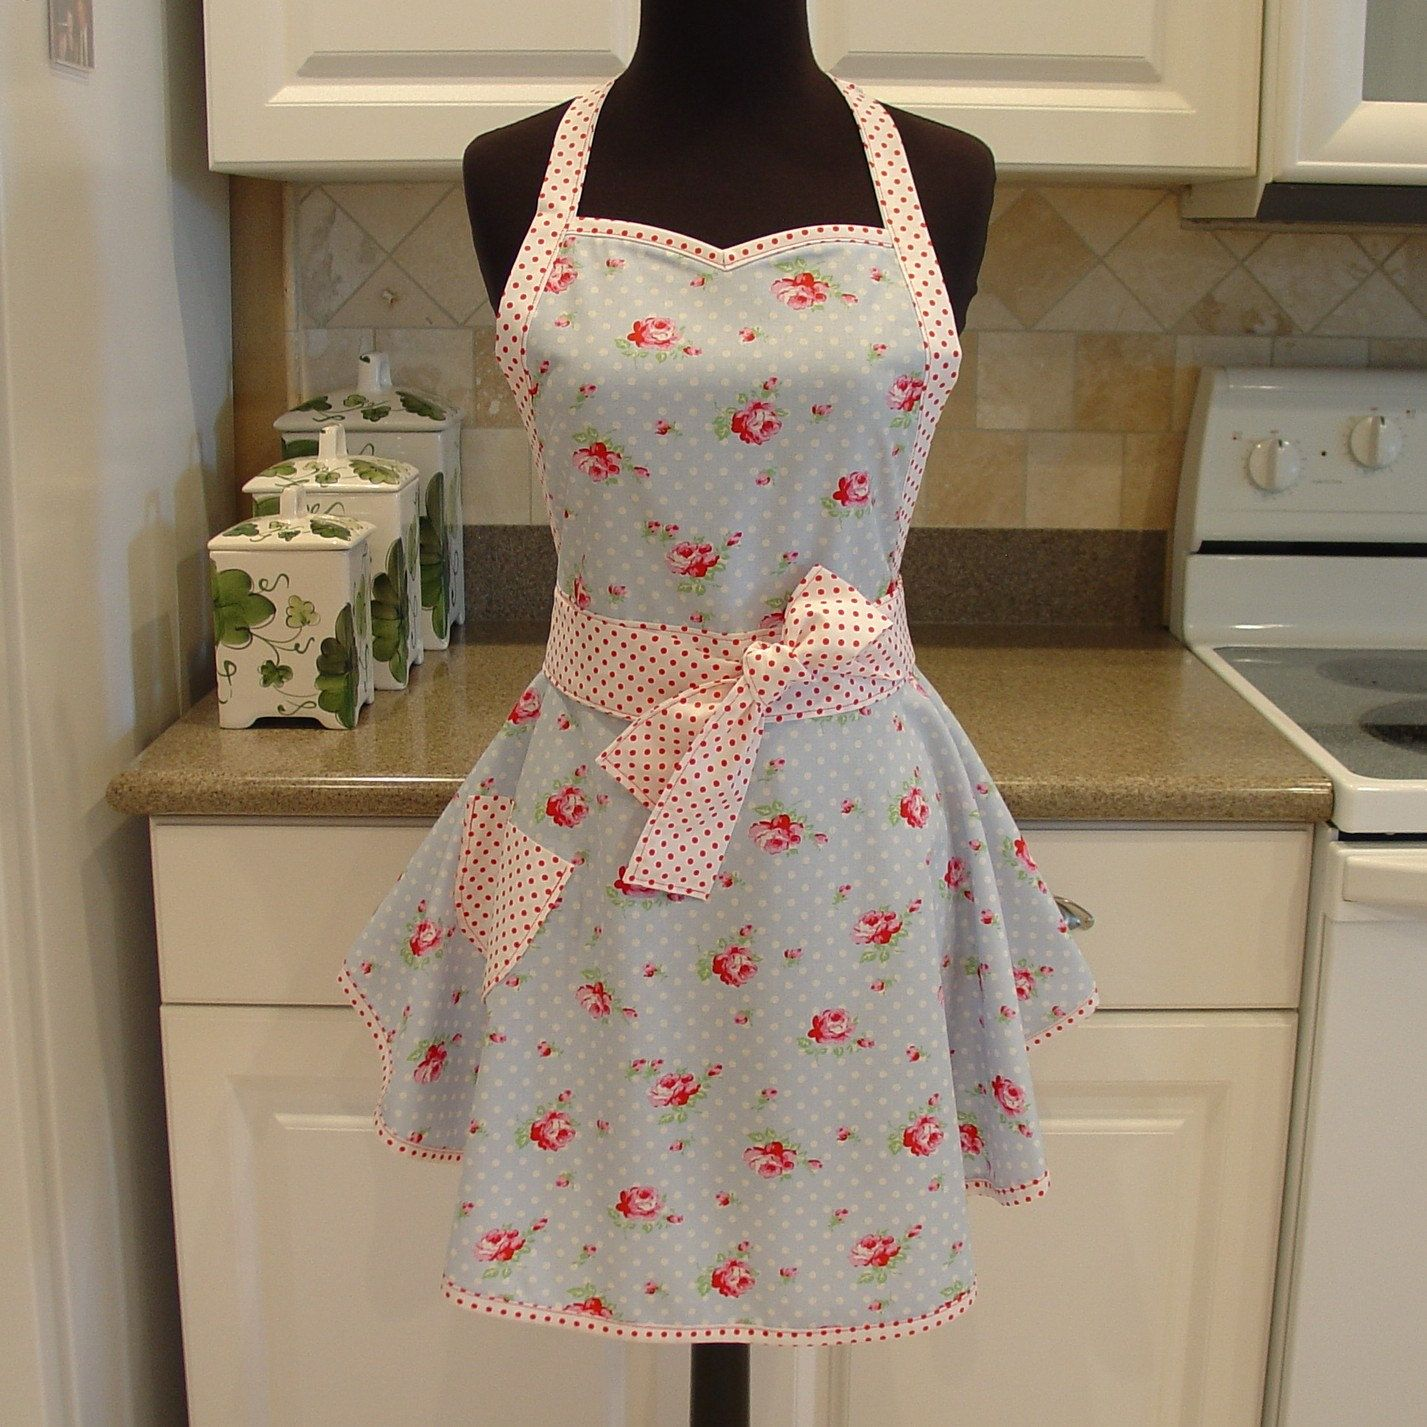 shabby chic apron rose buds in blue with pink dots apron rh pinterest ch shabby chic apron pattern shabby chic apron pattern